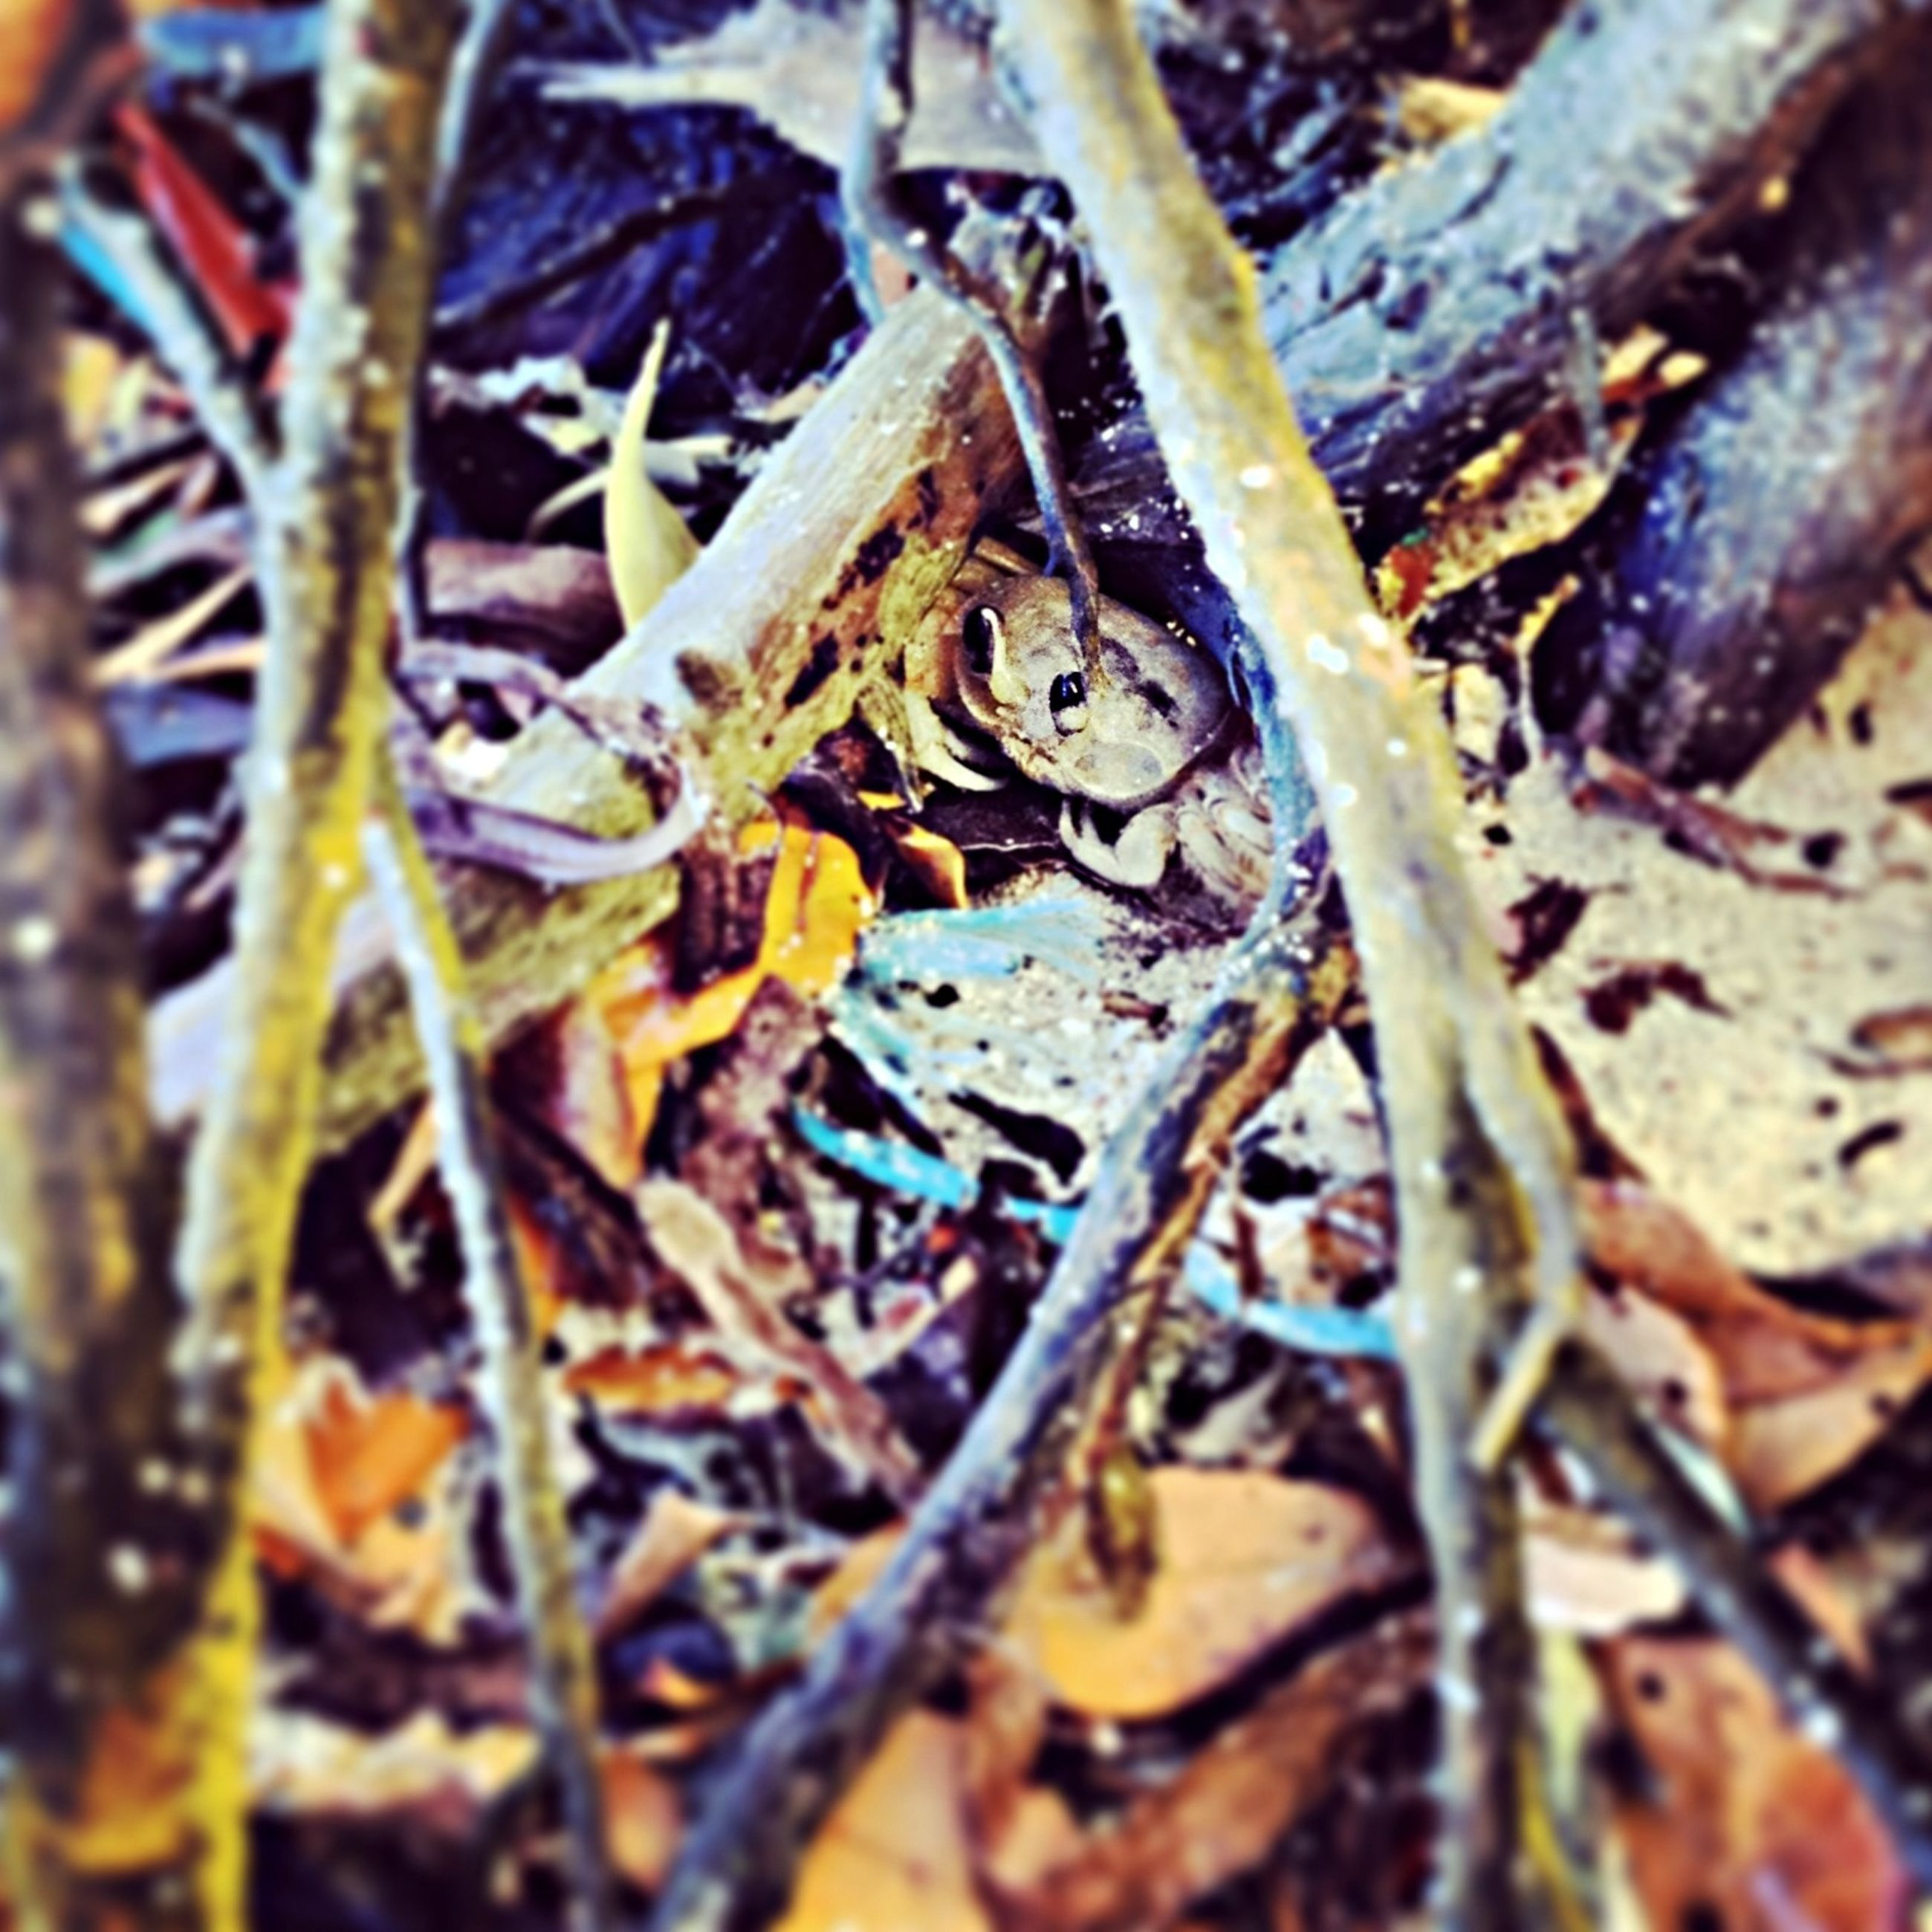 dry, leaf, close-up, selective focus, nature, autumn, change, twig, high angle view, day, outdoors, forest, growth, field, fallen, leaves, no people, focus on foreground, plant, aging process